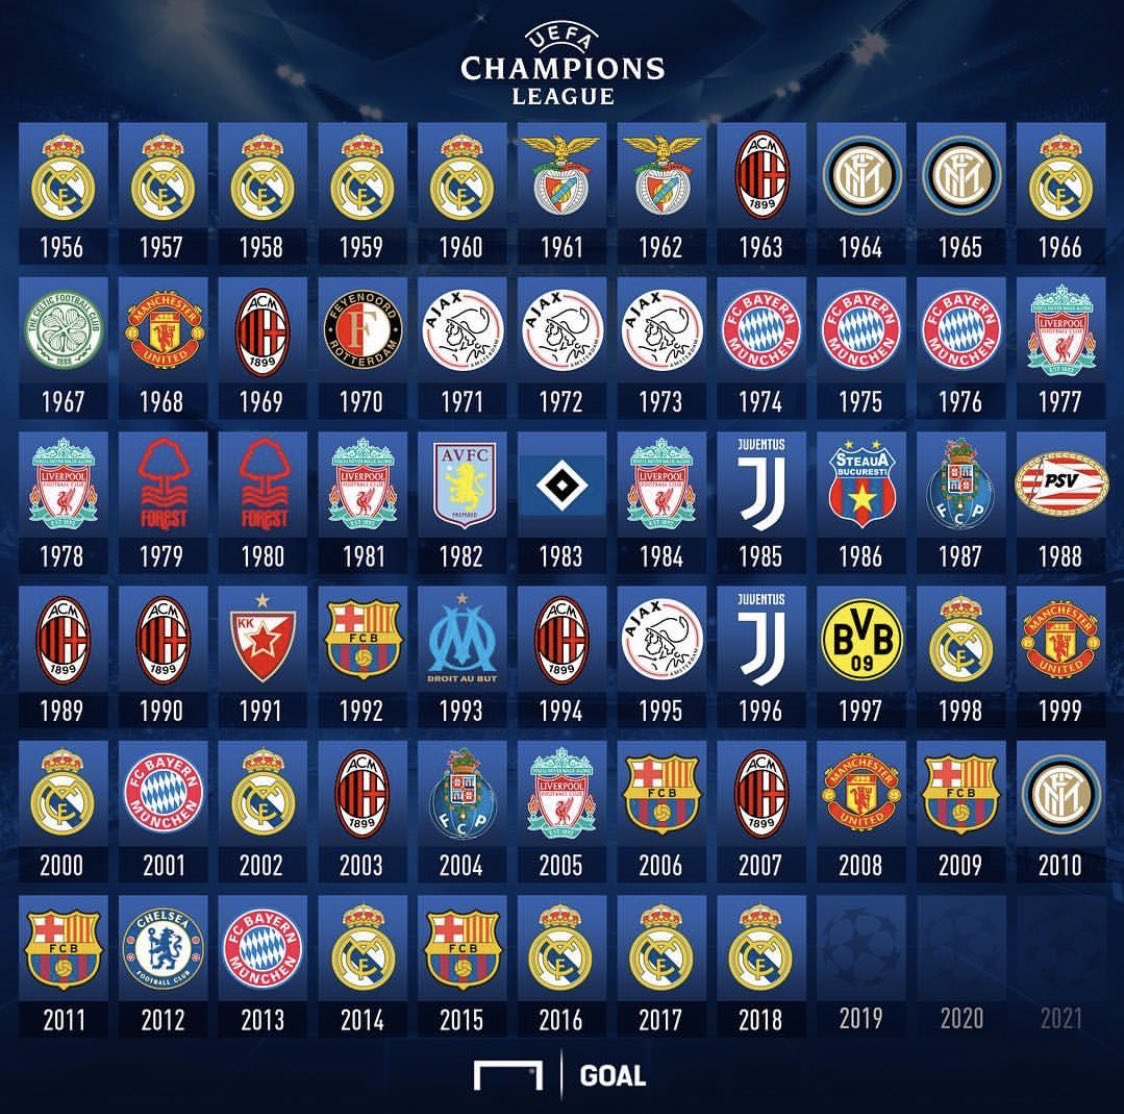 Retweet if your team has won the Champions League!